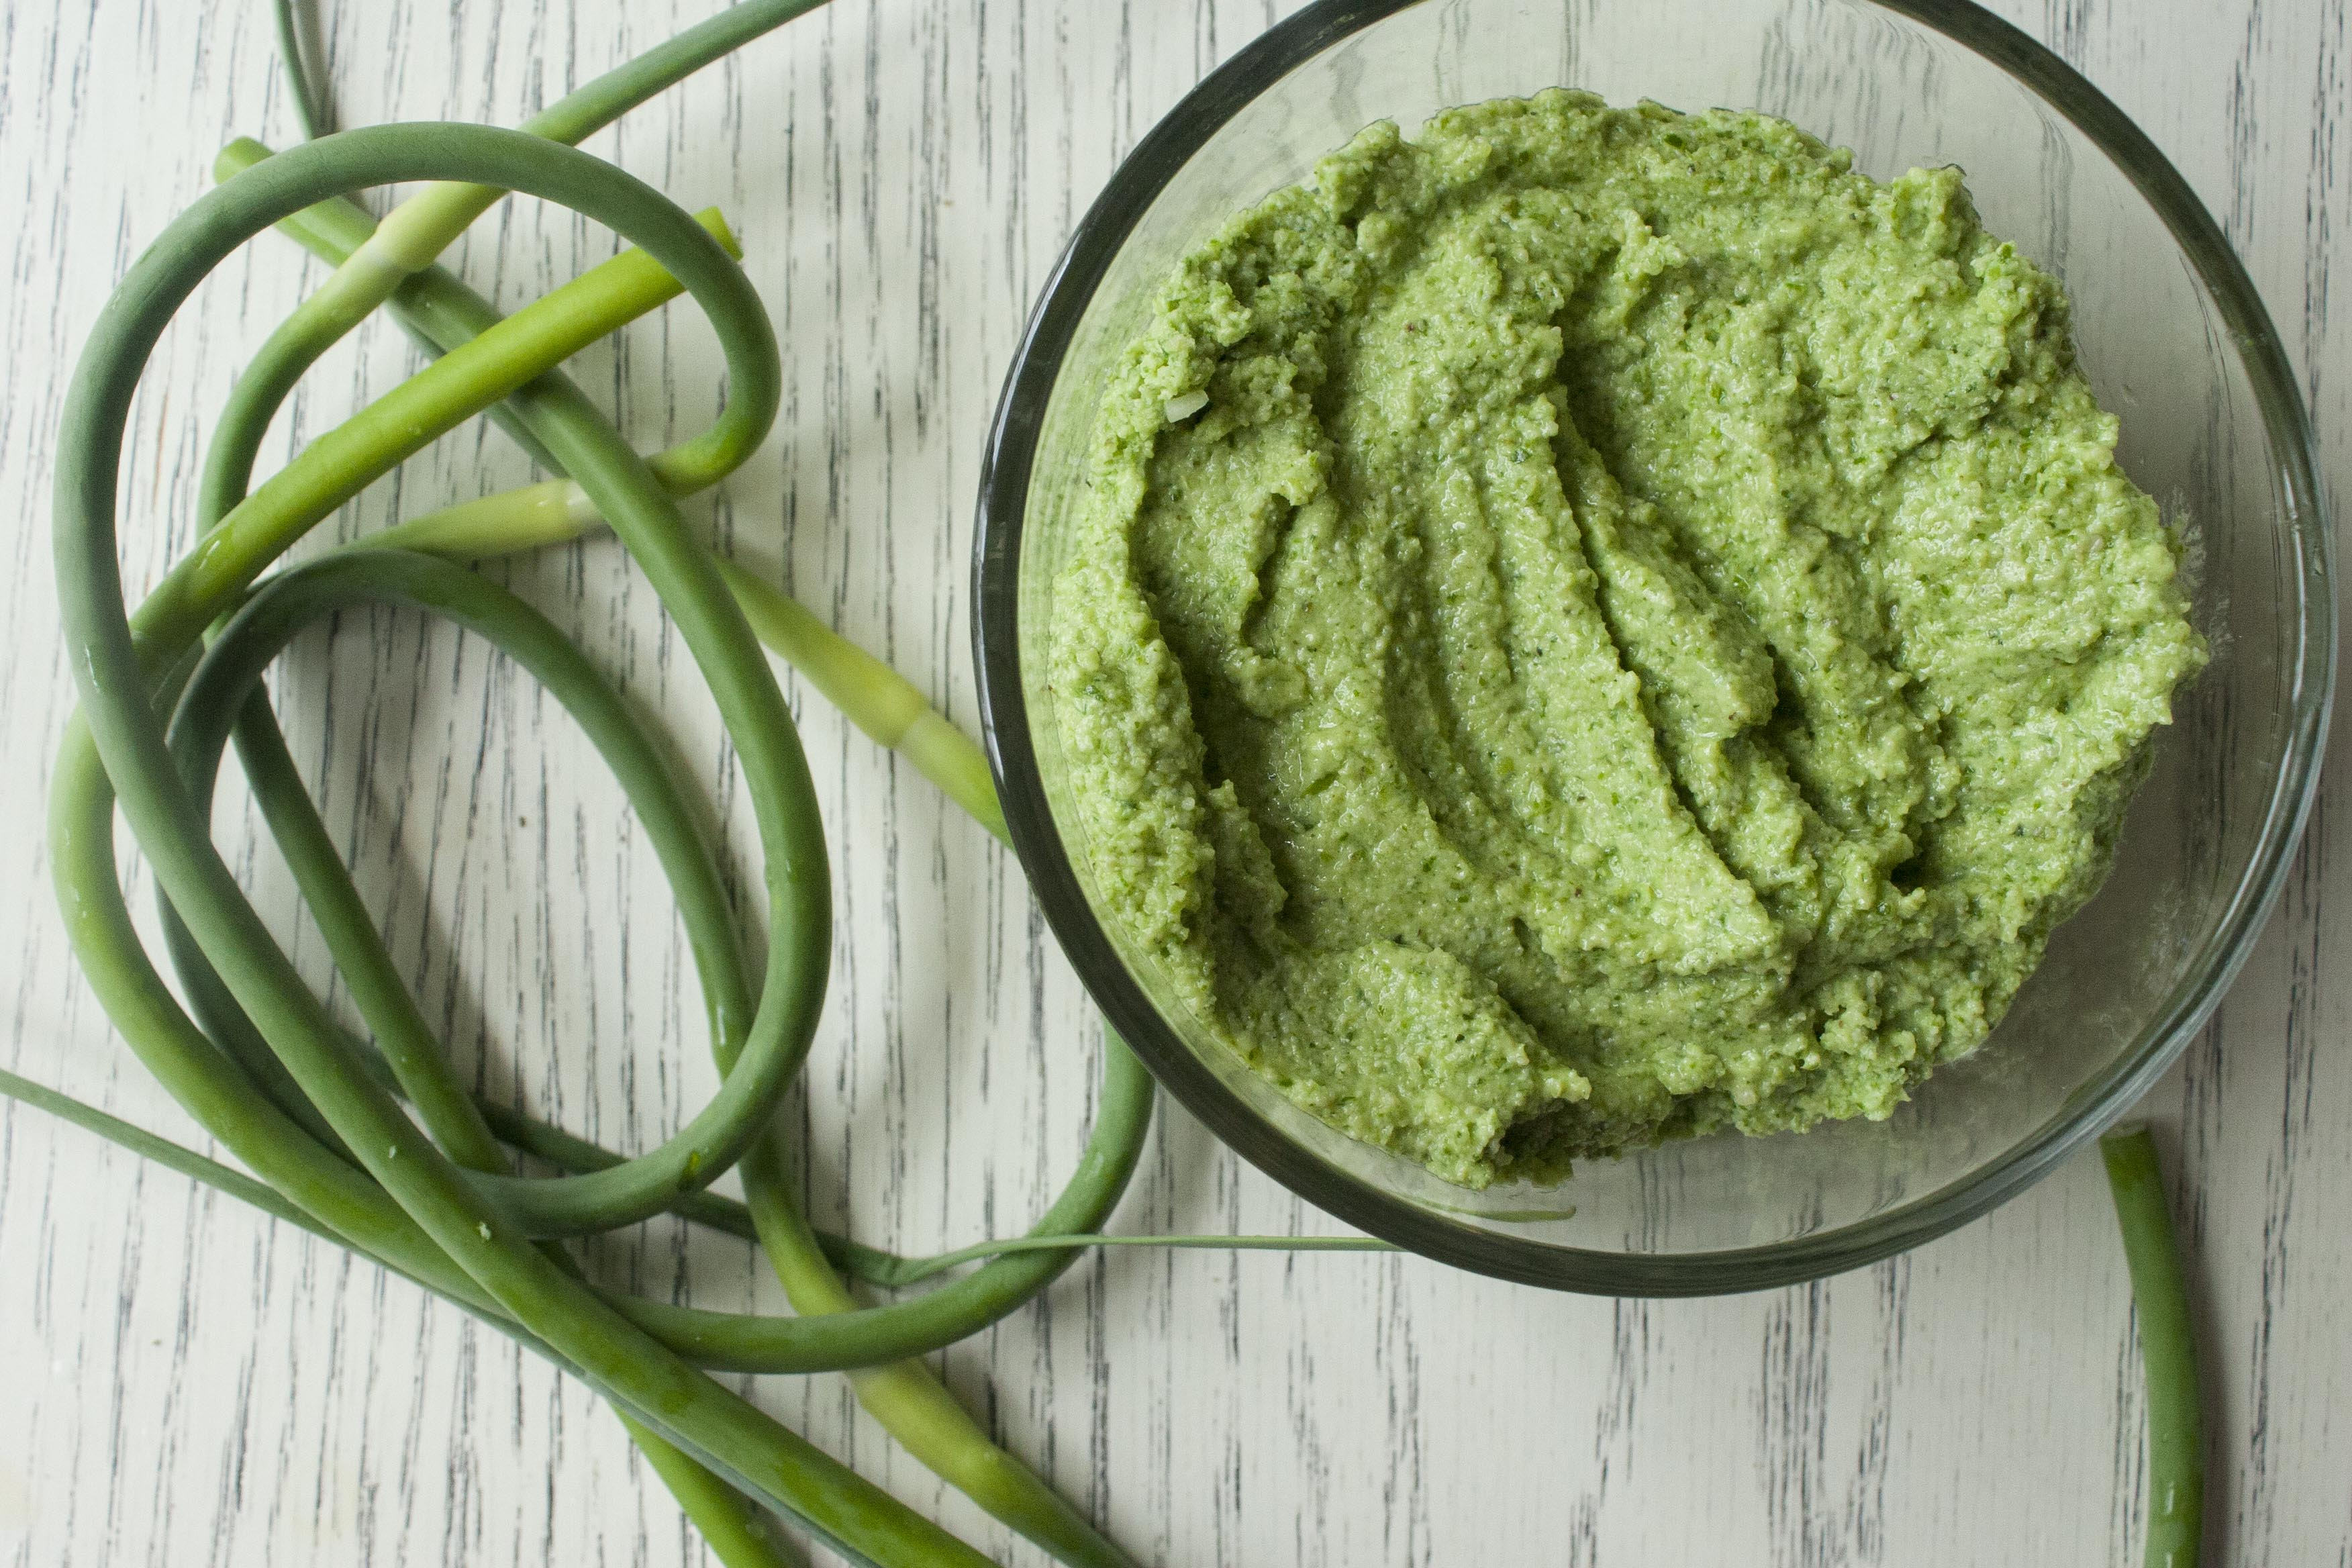 Blended Garlic Scape & Hemp Seed Pesto. www.lifeaswecookit.com